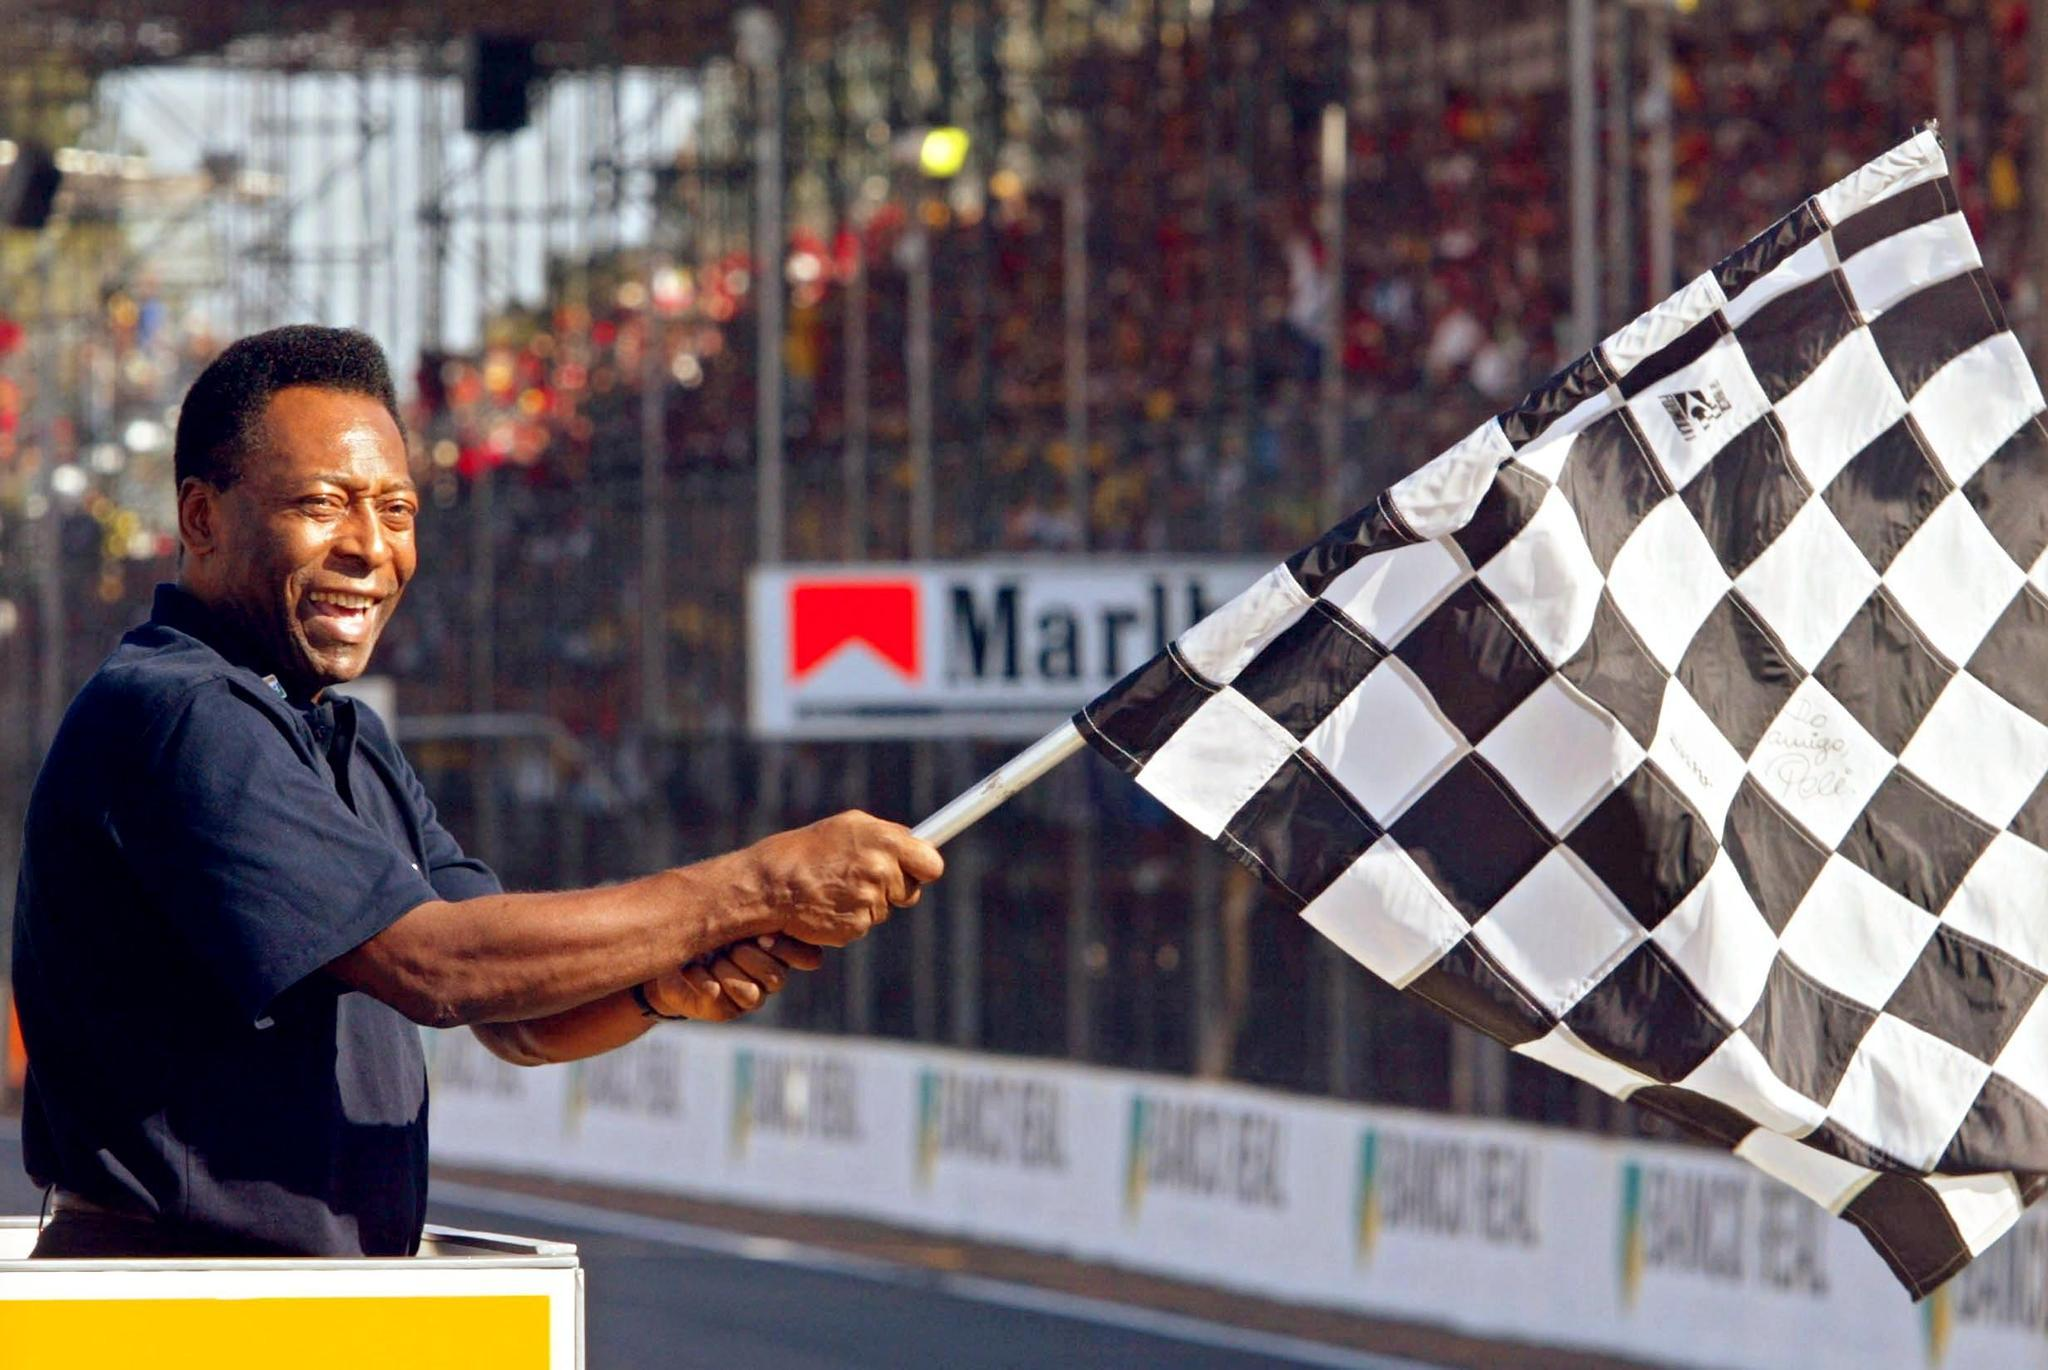 Brazil football icon Pele was left red faced after his flag mishap during the 2002 Grand Prix held in his homeland